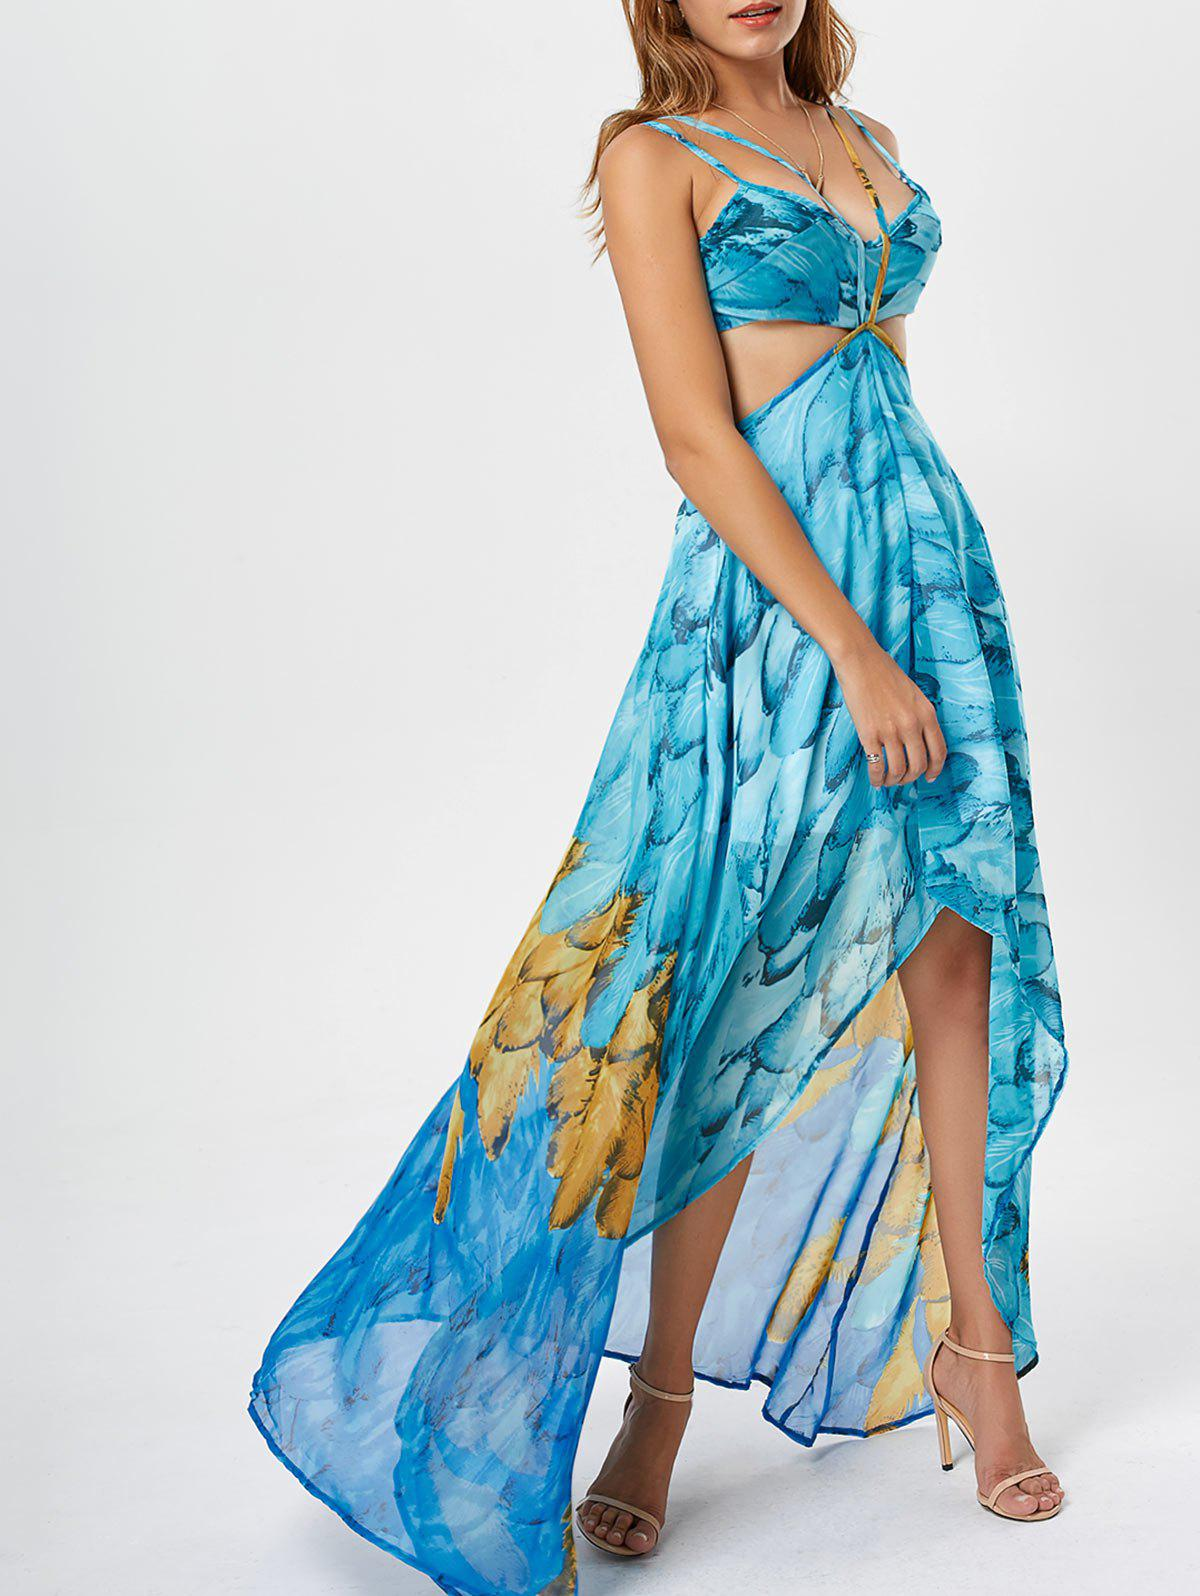 Printed Chiffon Cutout High Low Dress - LIGHT BLUE S